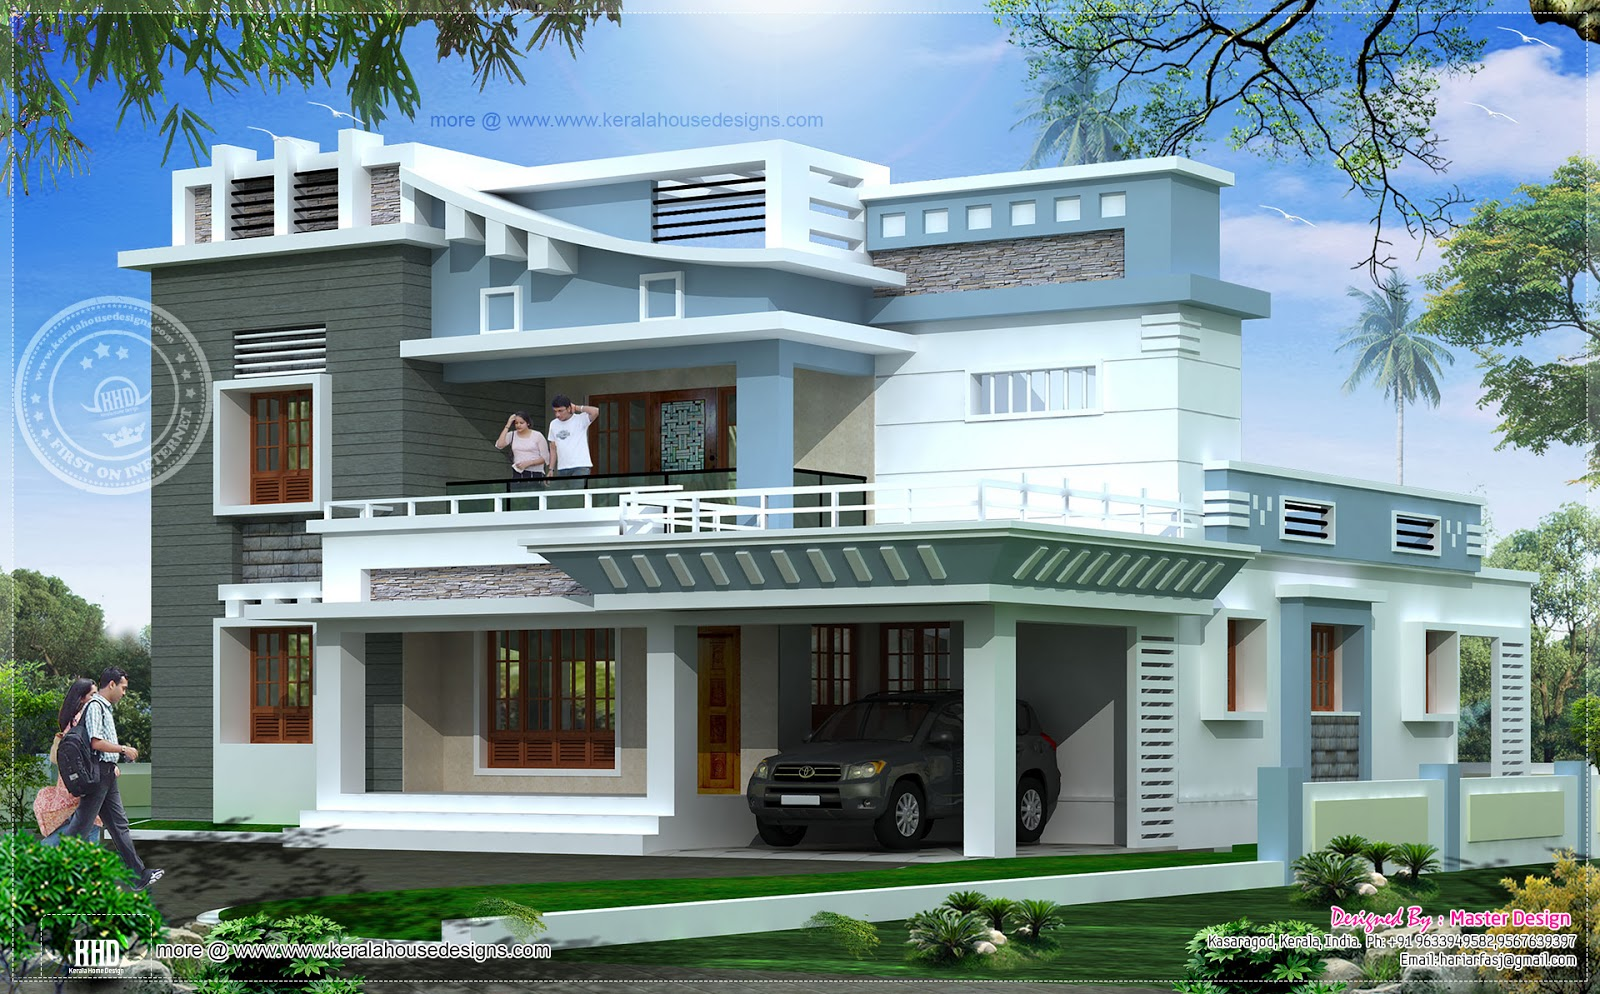 2547 square feet exterior home elevation house design plans Design the outside of your house online